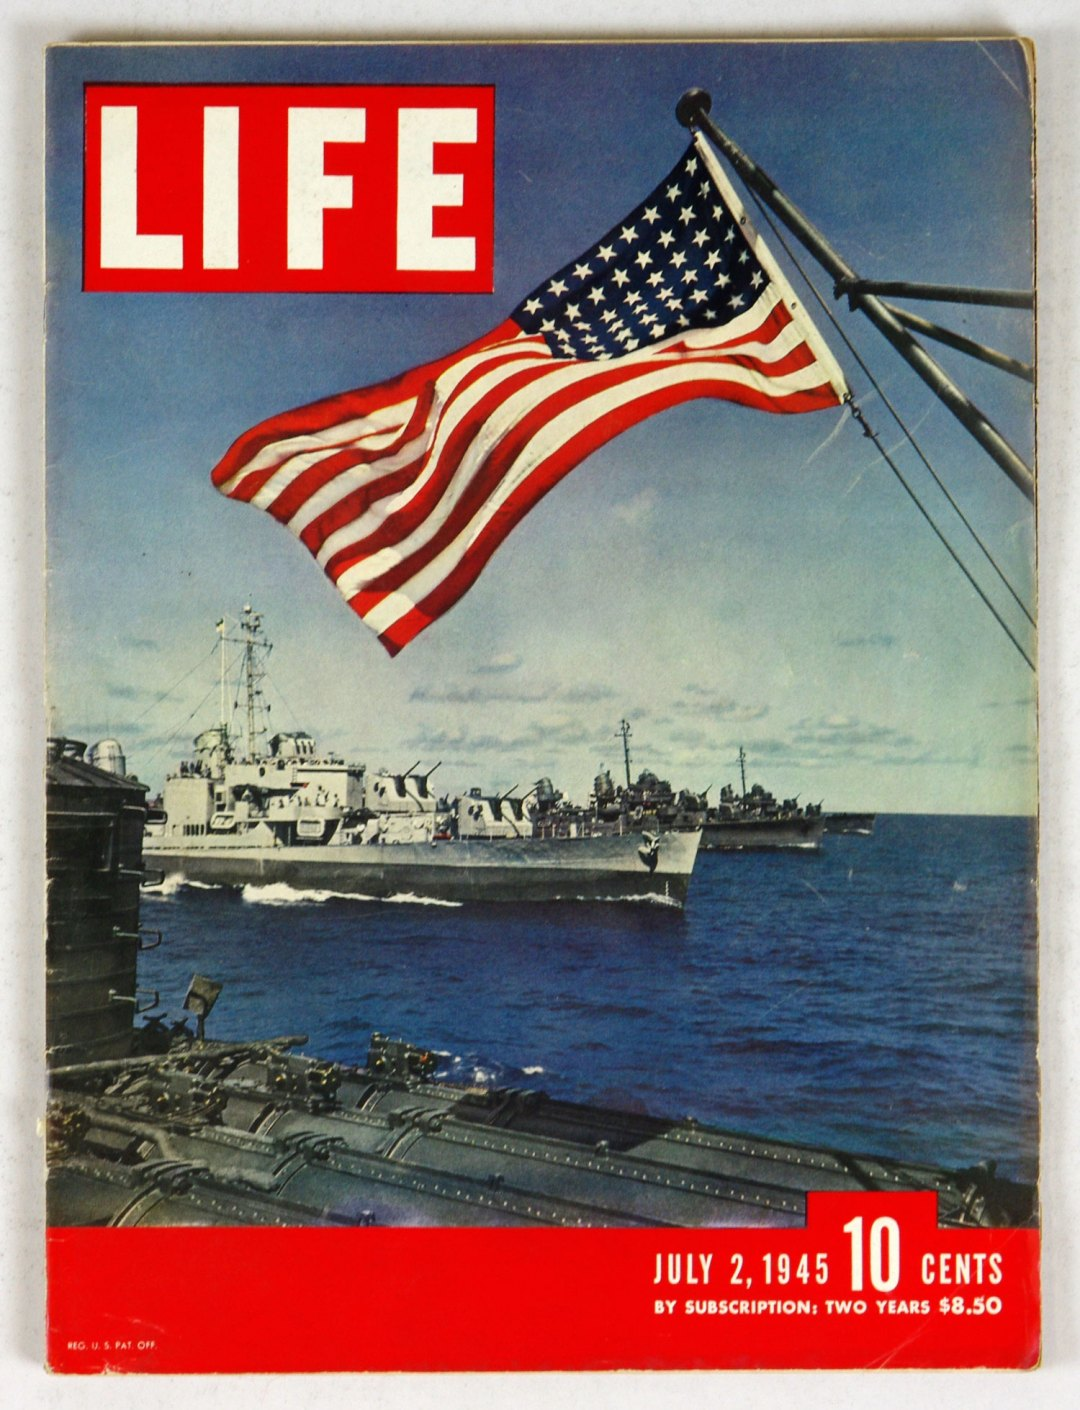 LIFE Magazine 1945 July 2 American Flag with Navy Ships